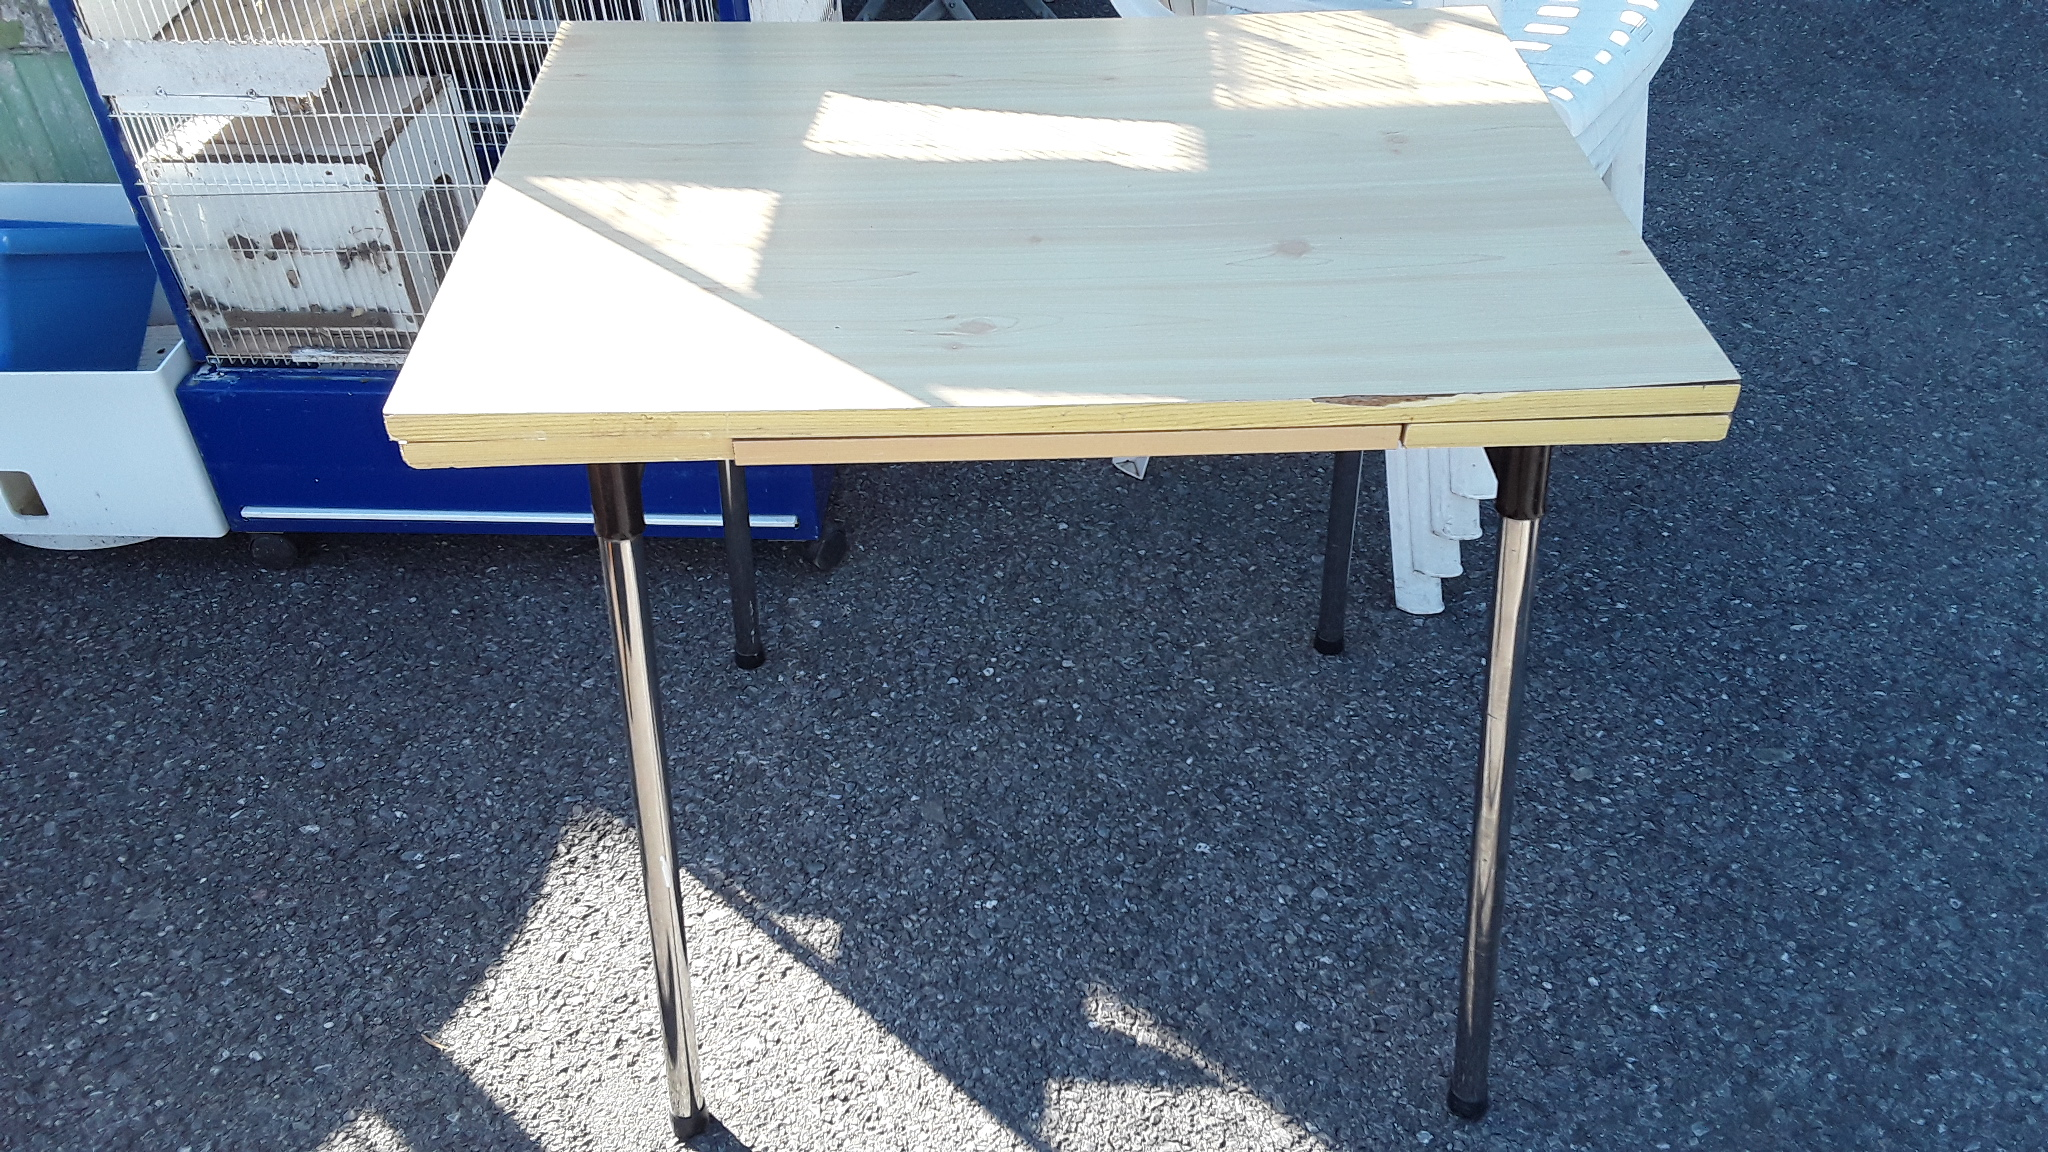 TABLE FORMICA ITALIENNE PIEDS METAL 2 RALLONGES